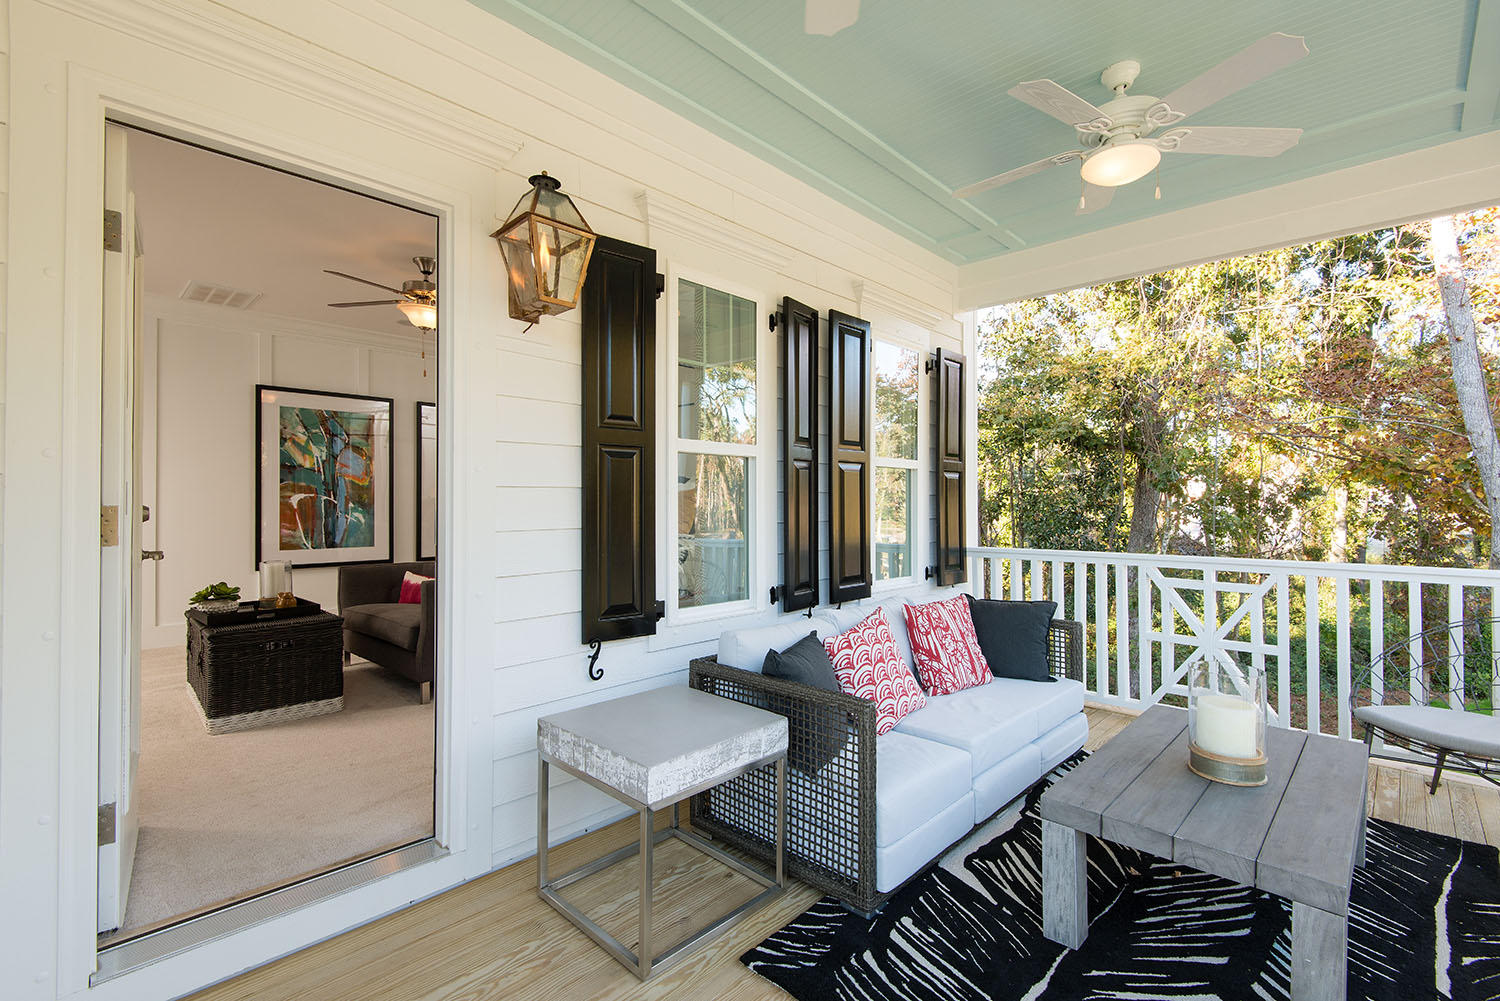 The Village at Stiles Point Homes For Sale - 869 Shutes Folly, Charleston, SC - 5